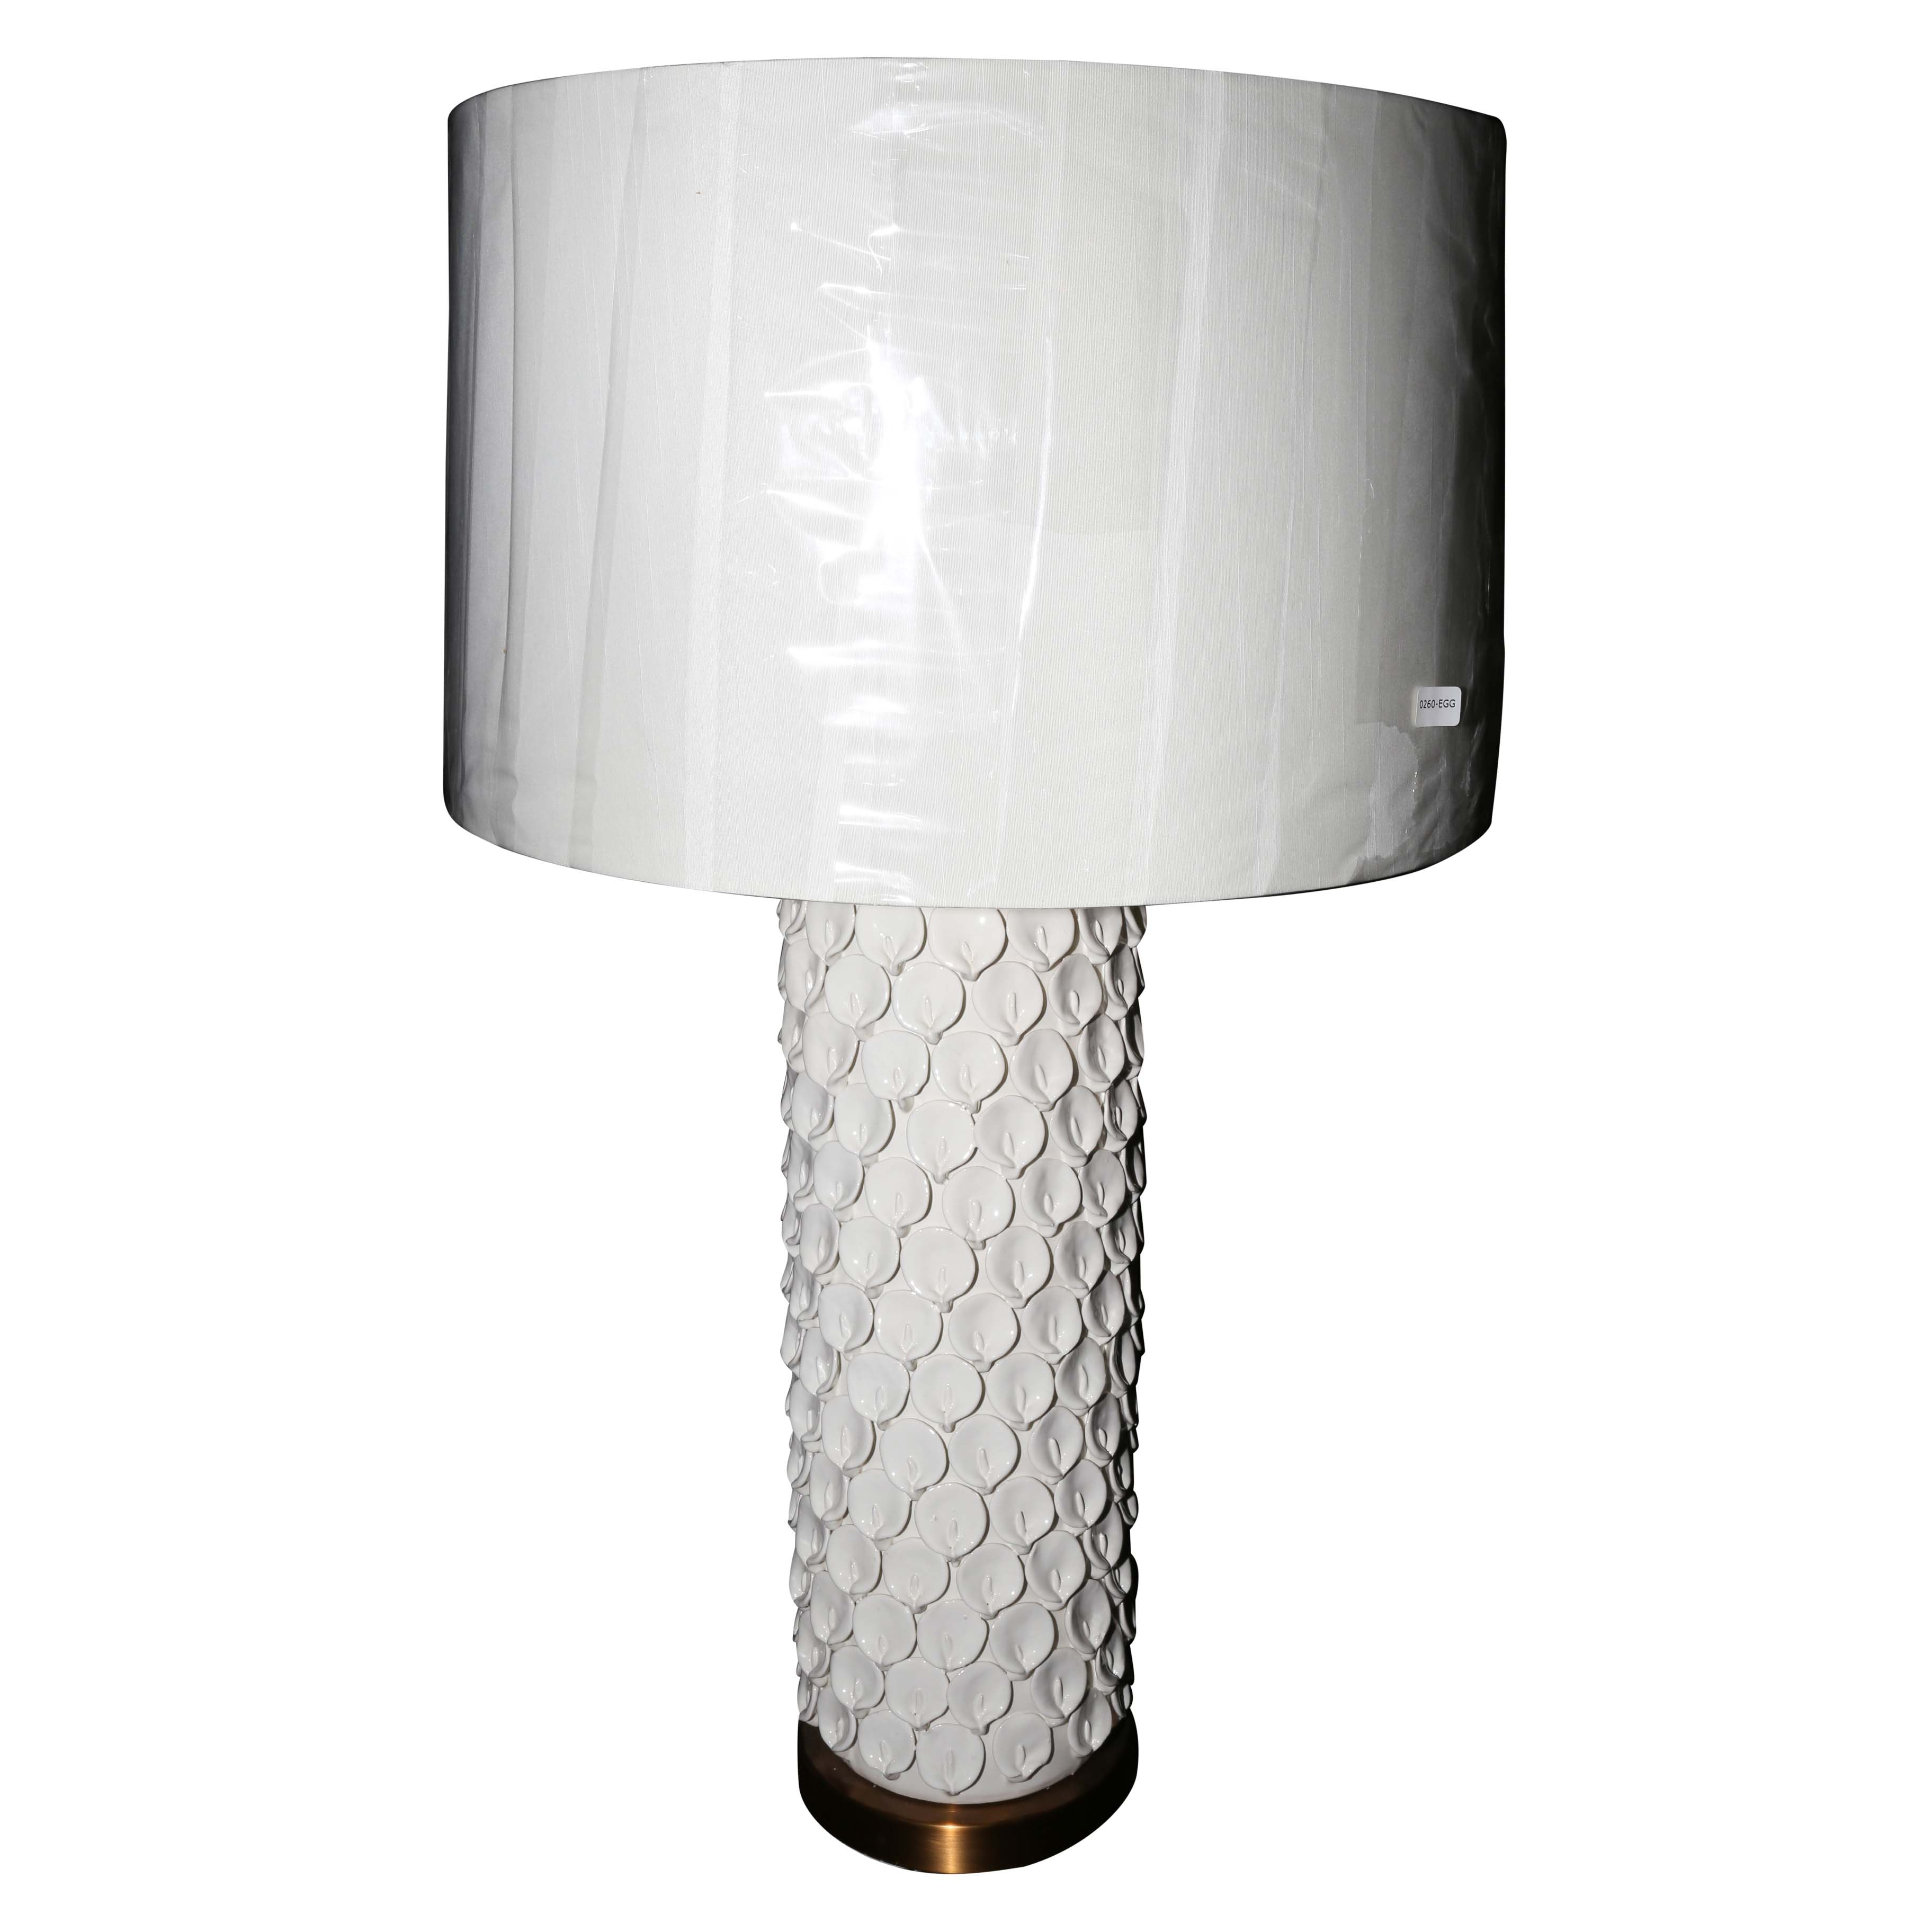 Calla Lily Table Lamp By Currey Company Ebth